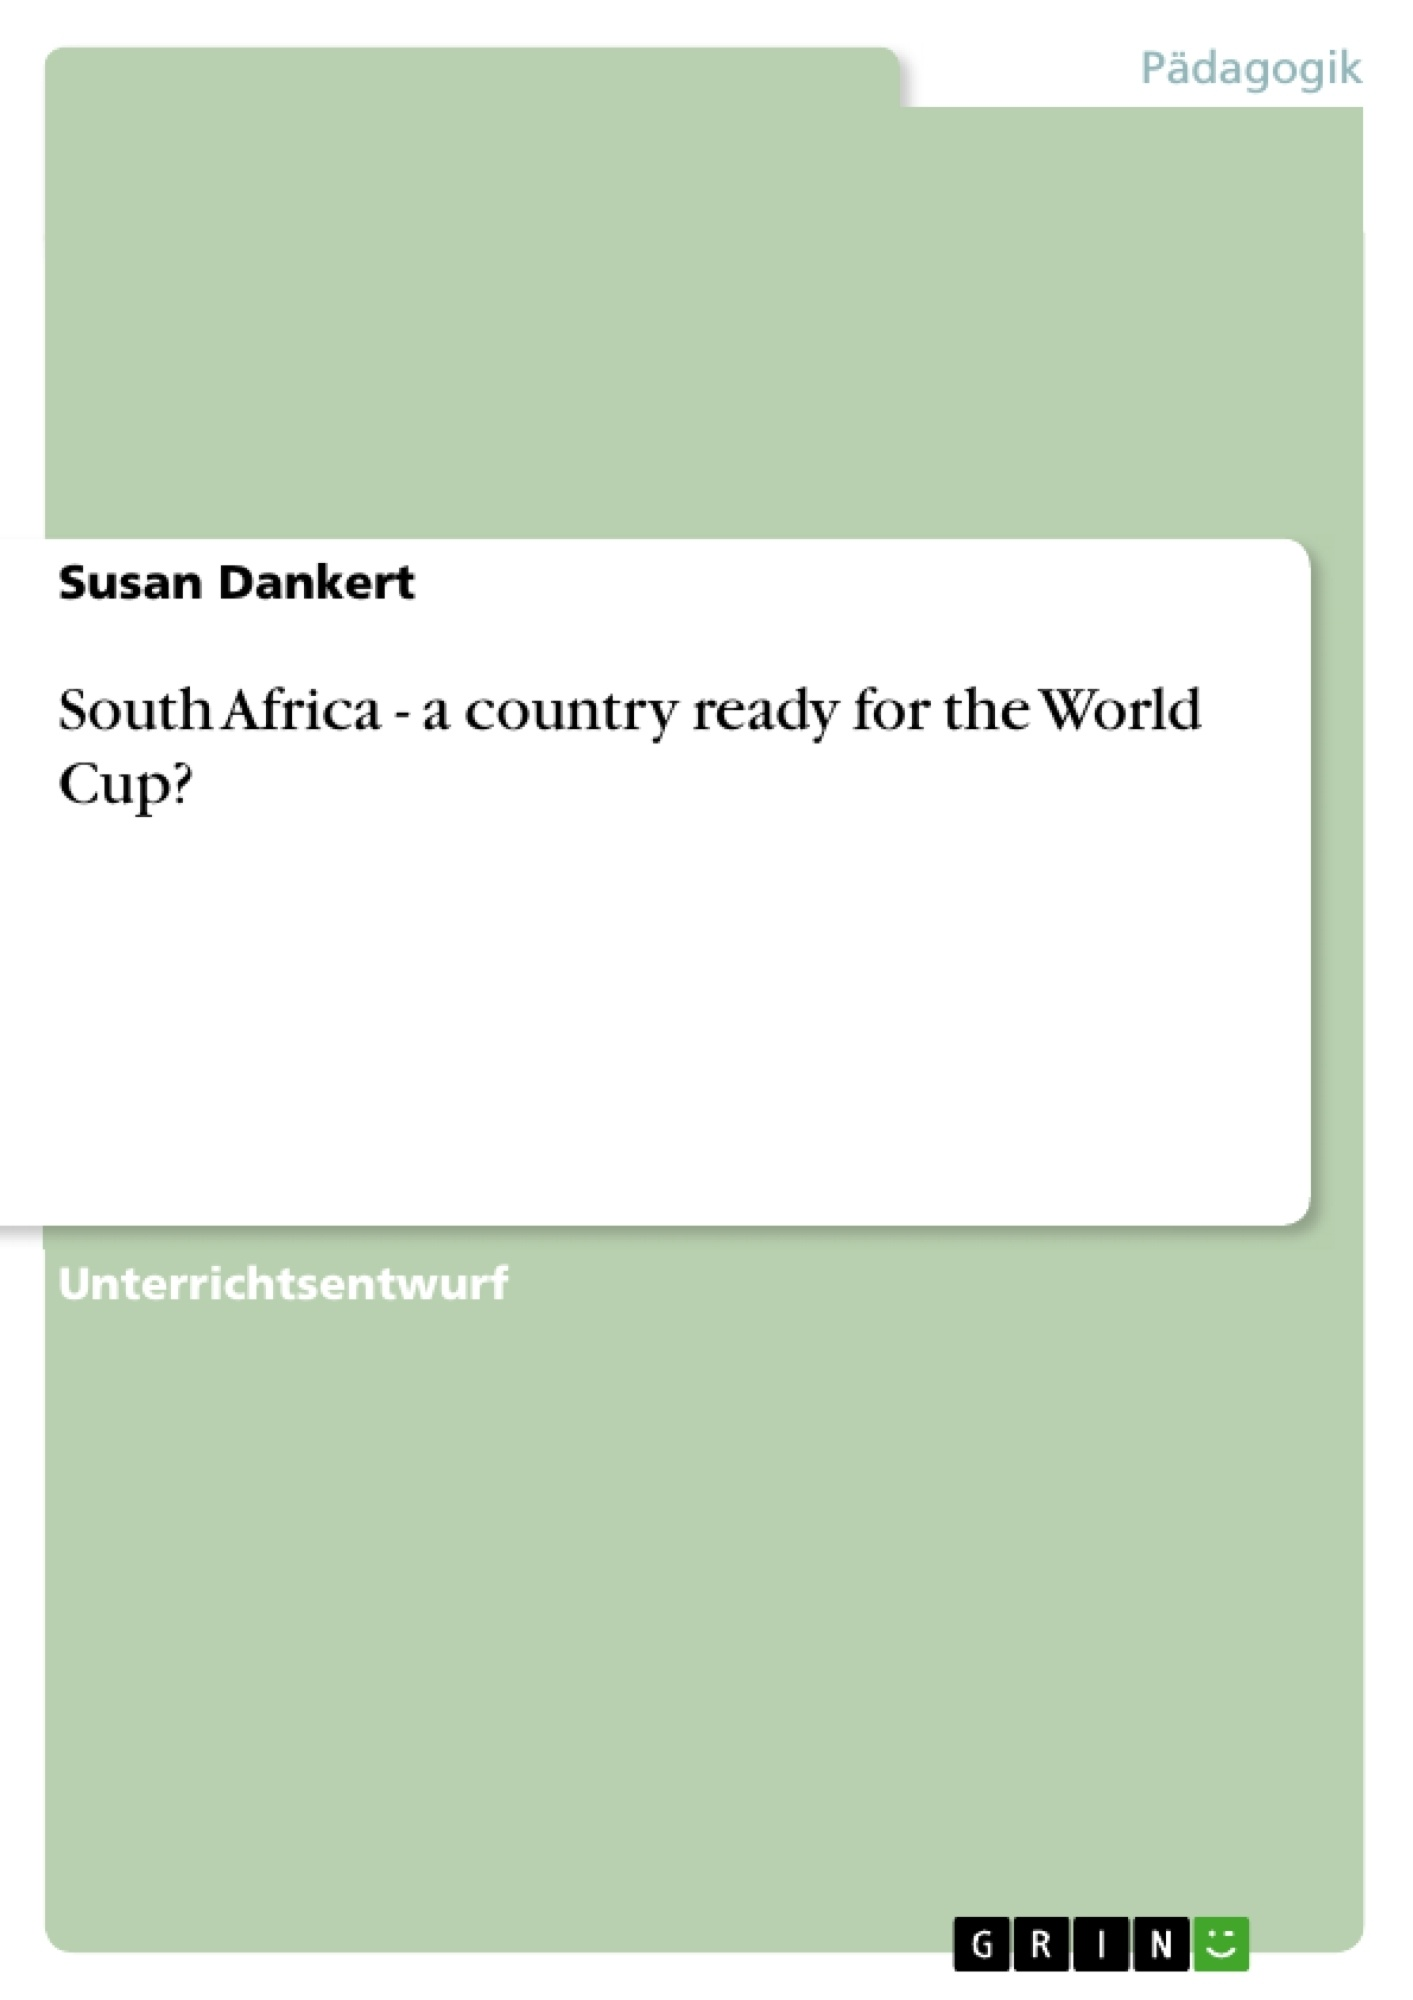 Titel: South Africa - a country ready for the World Cup?